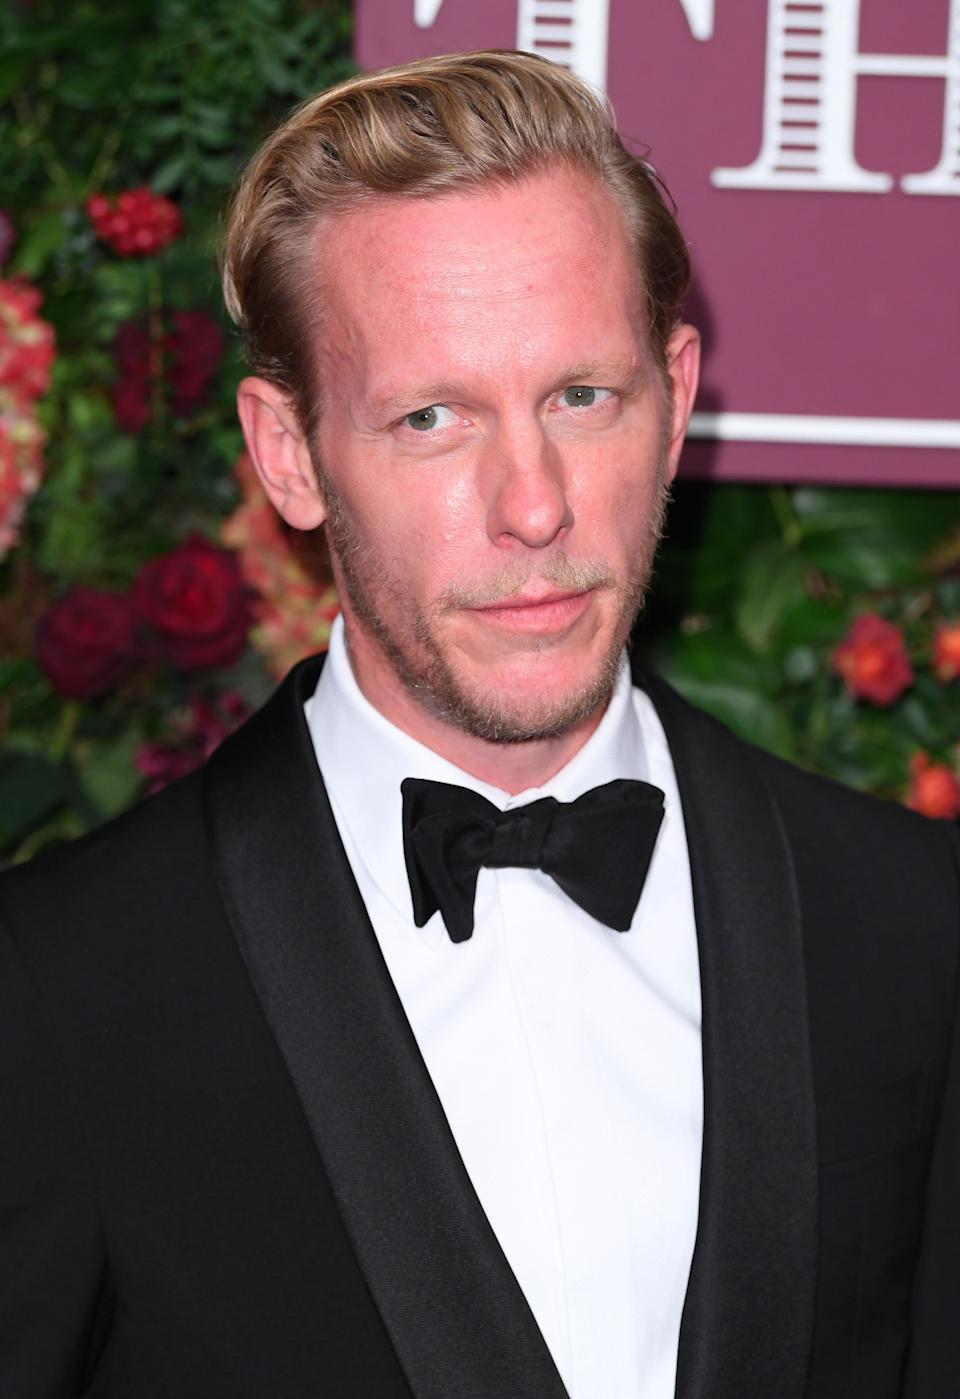 Laurence Fox (Photo: David Fisher/Shutterstock)